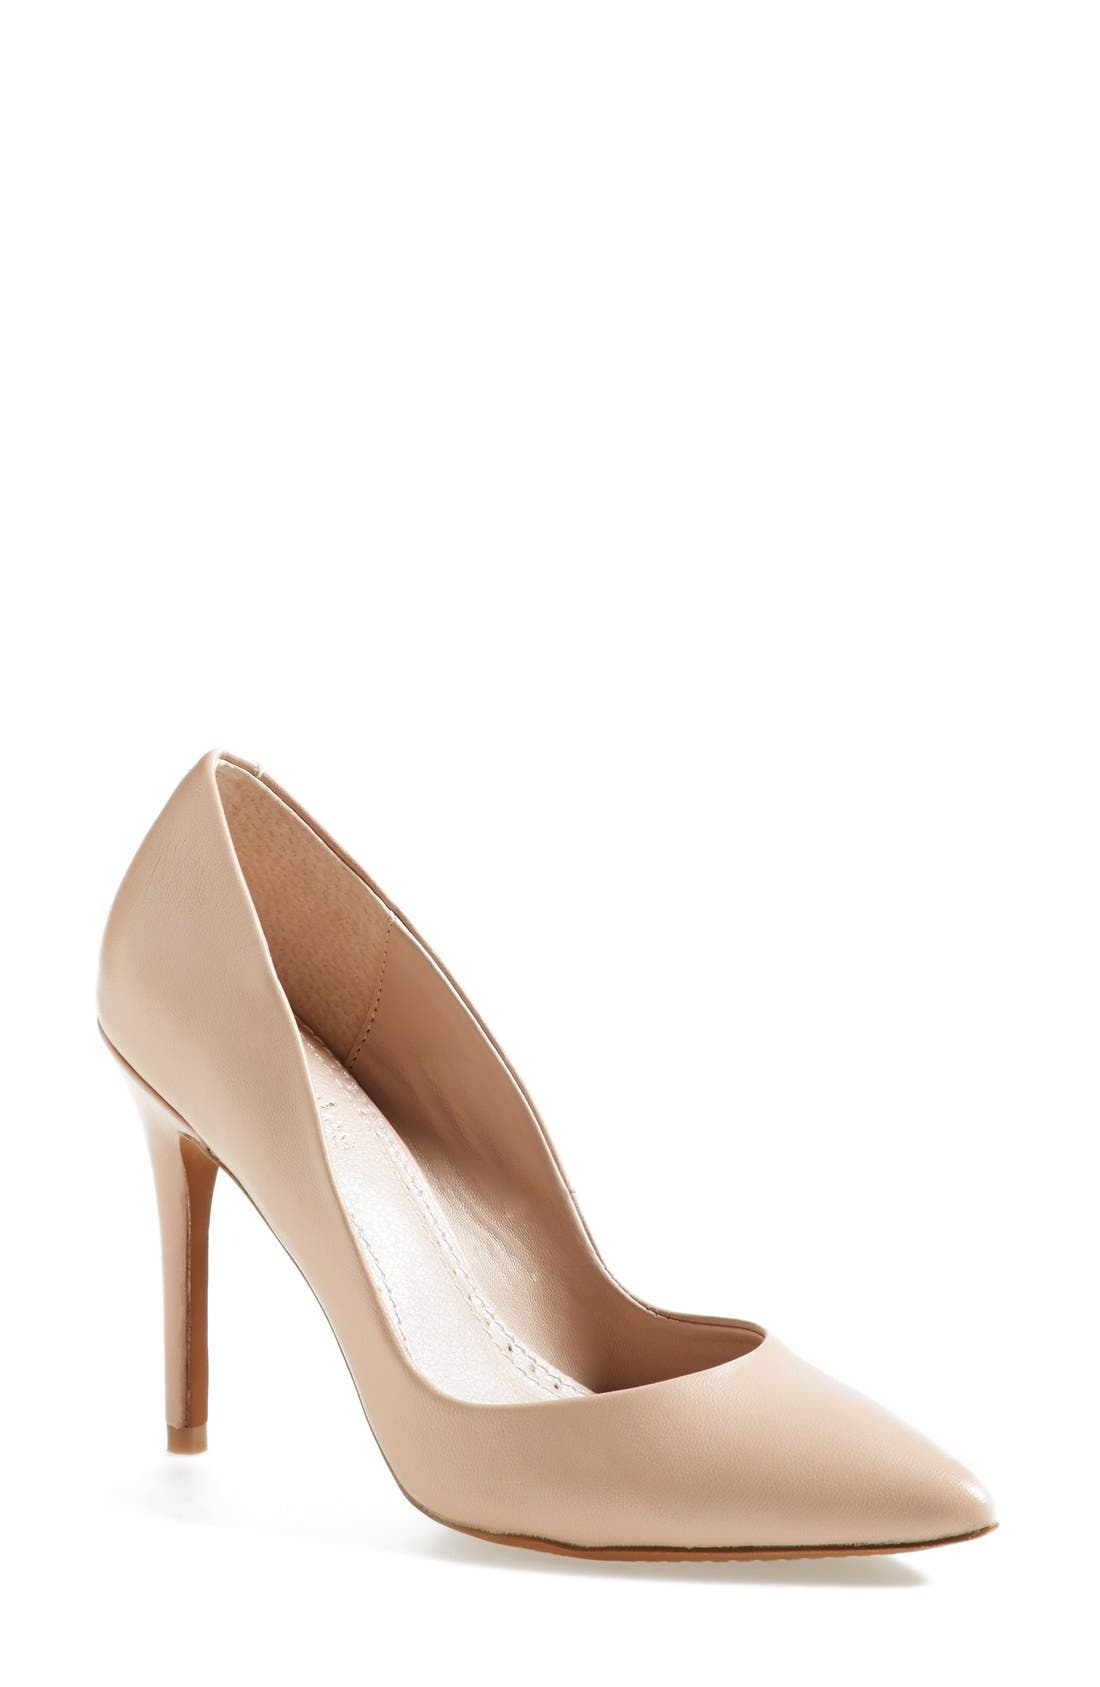 Alternate Image 1 Selected - Charles by Charles David 'Pact' Pump (Women)